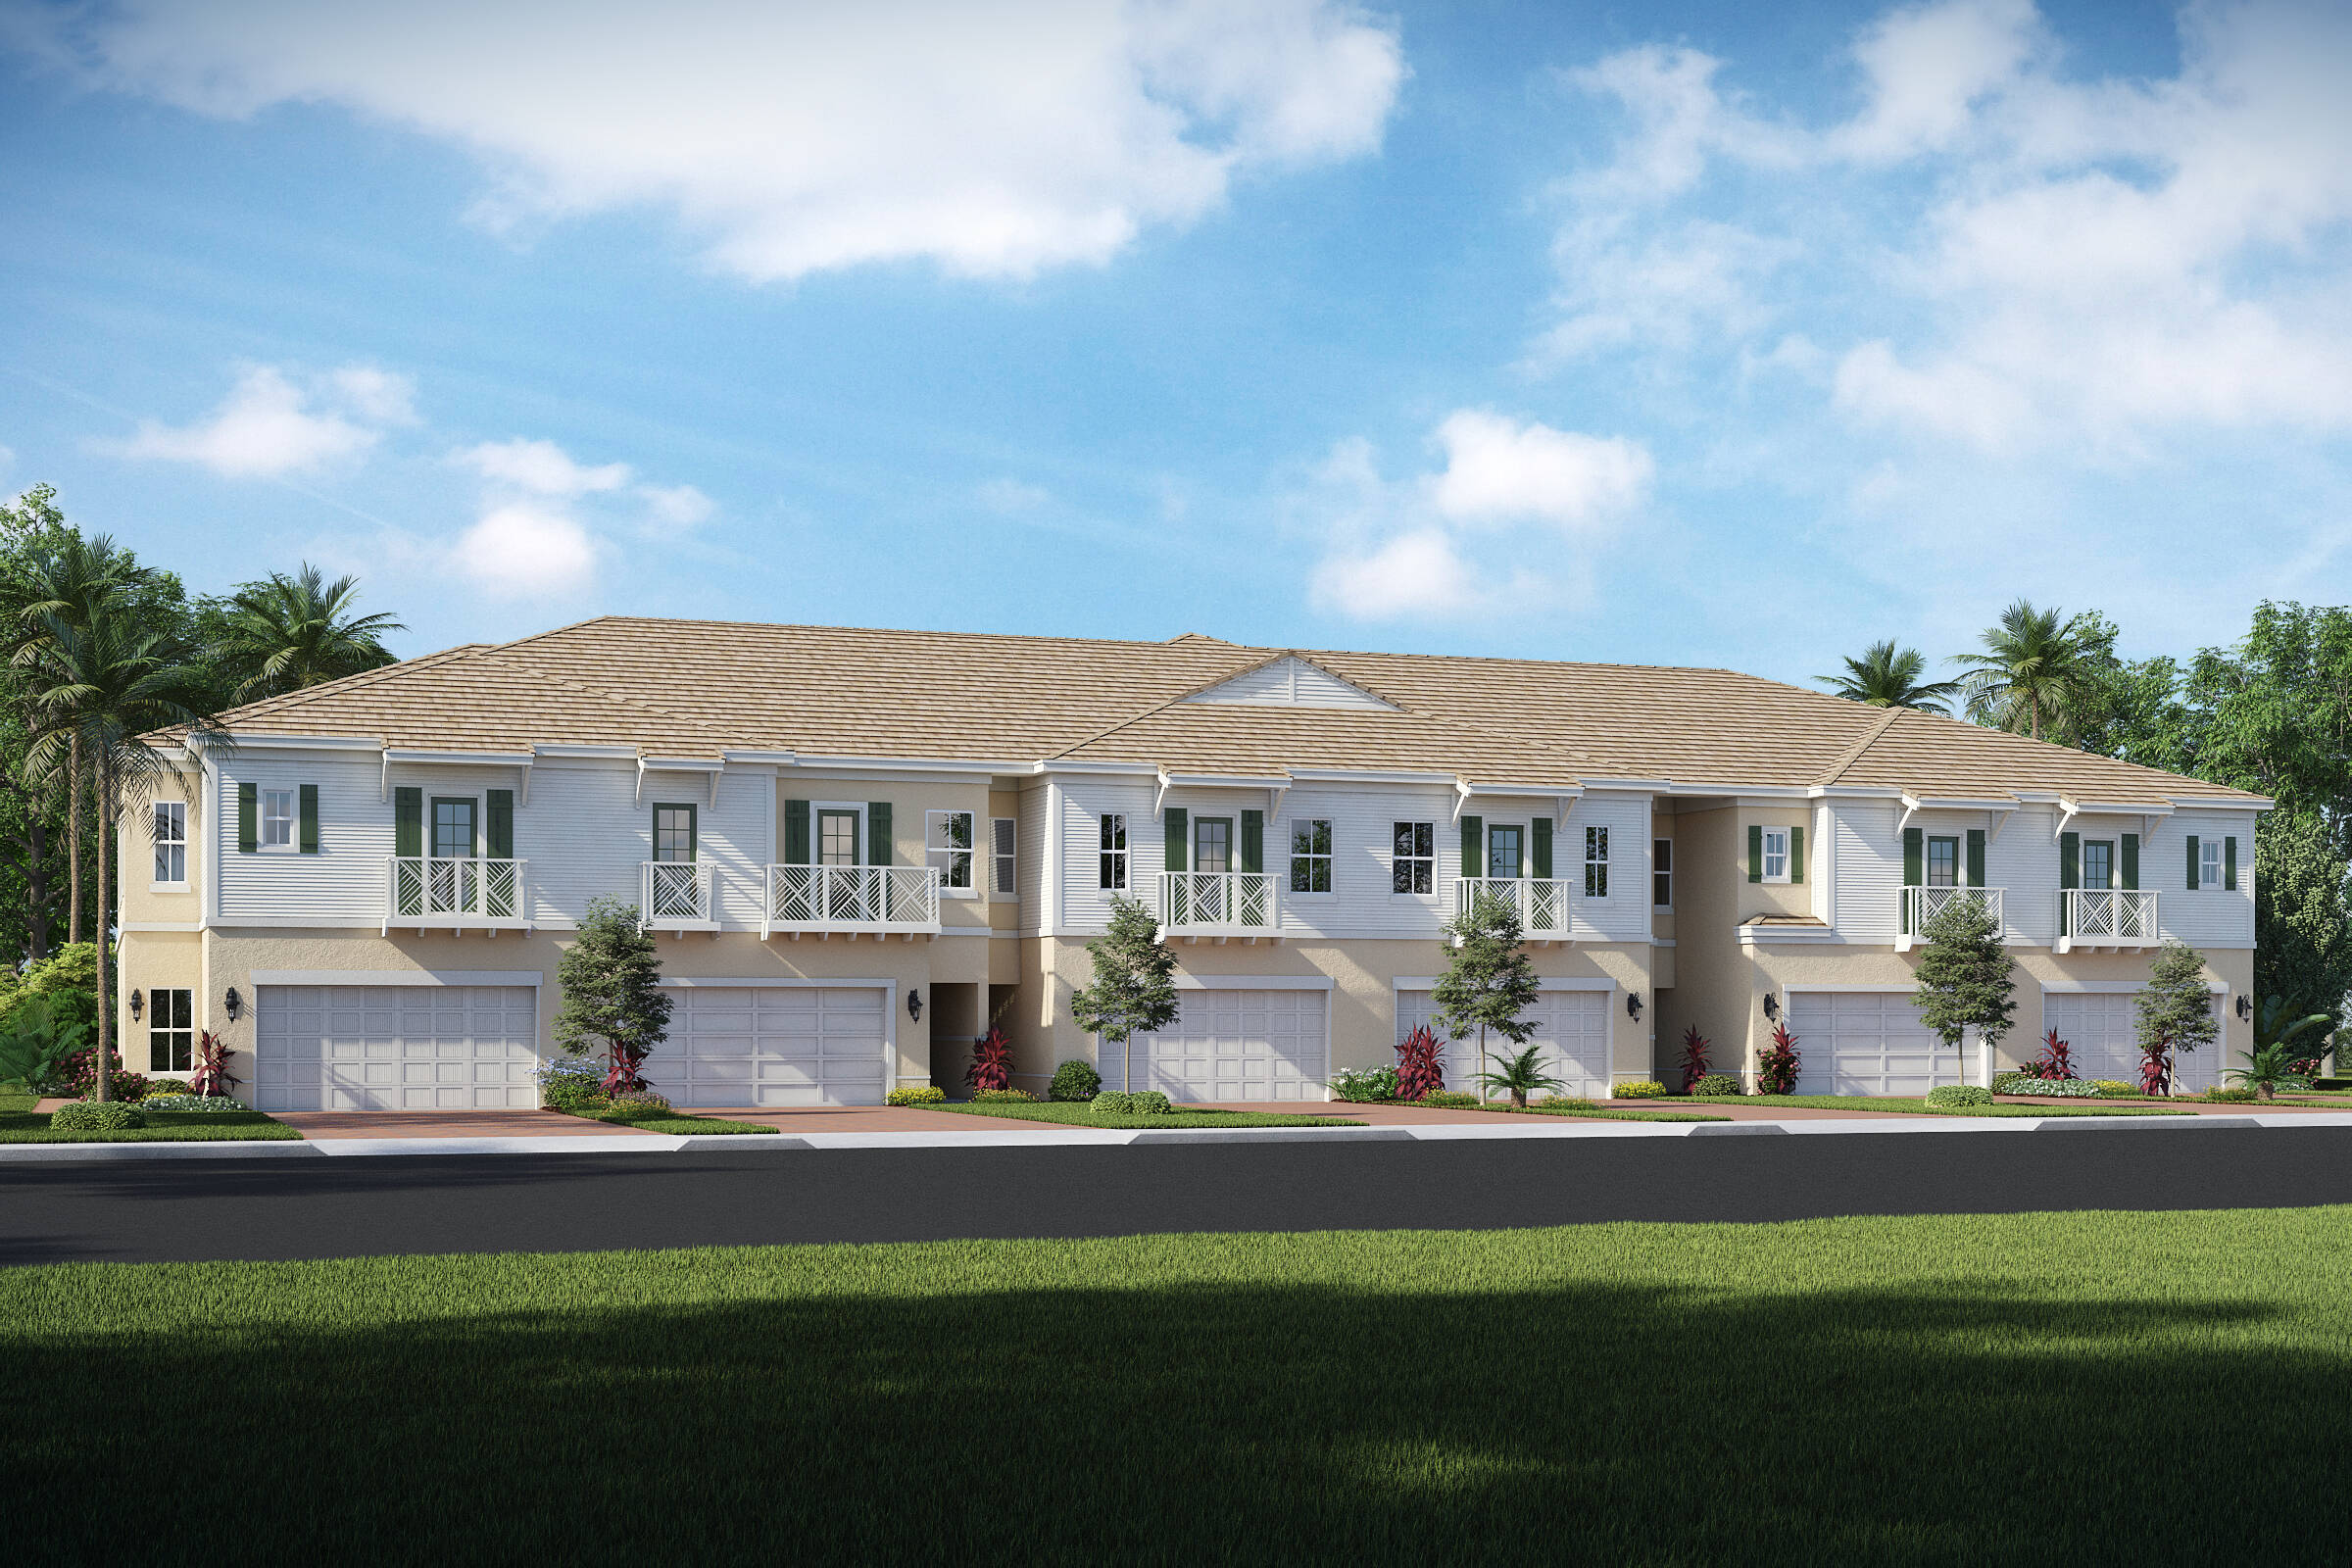 new townhomes in royal palm beach florida elevation